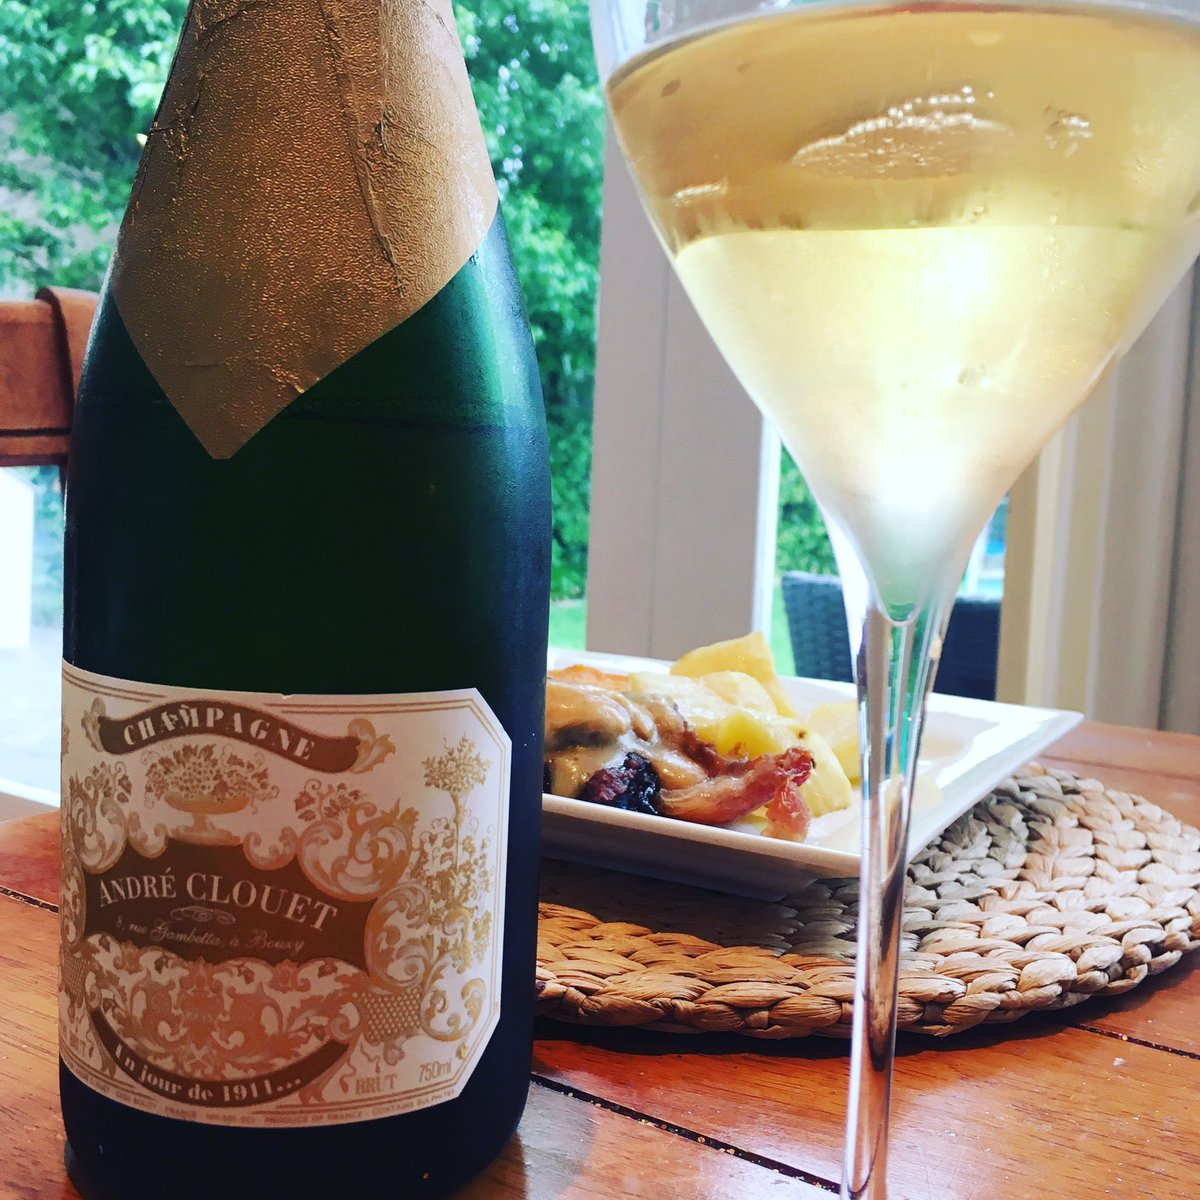 Pairing my bottle of Andre Clouet 1911 with a rather easy but delicious dinner of roast pork. Quite simply, one of the best multi-vintage prestige #champagnes you will find. <br>http://pic.twitter.com/2QcF8z7qaK